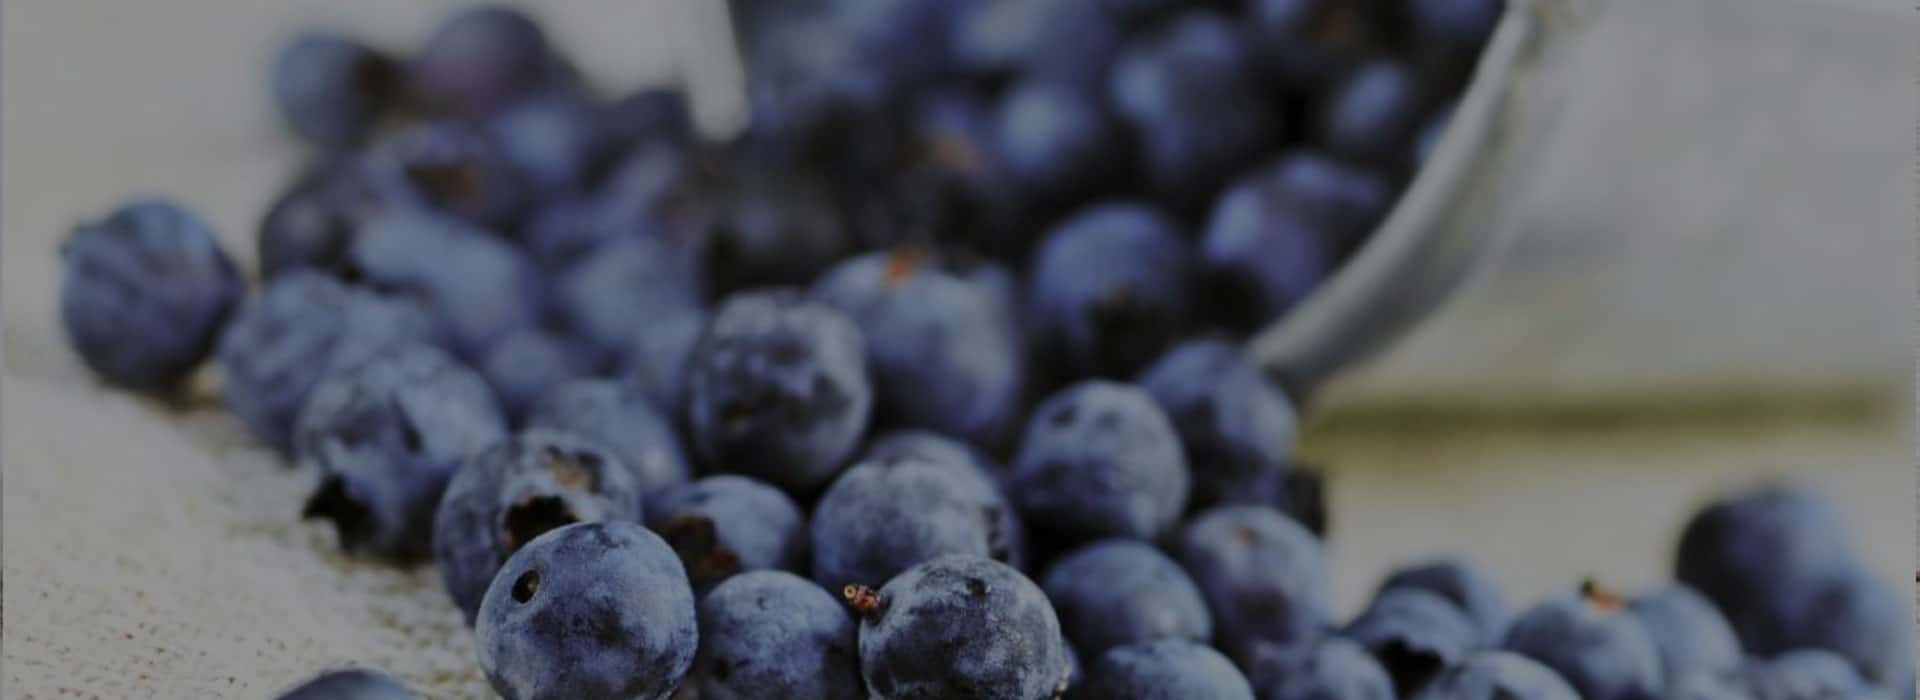 How to remove stains from blueberries: the best ways